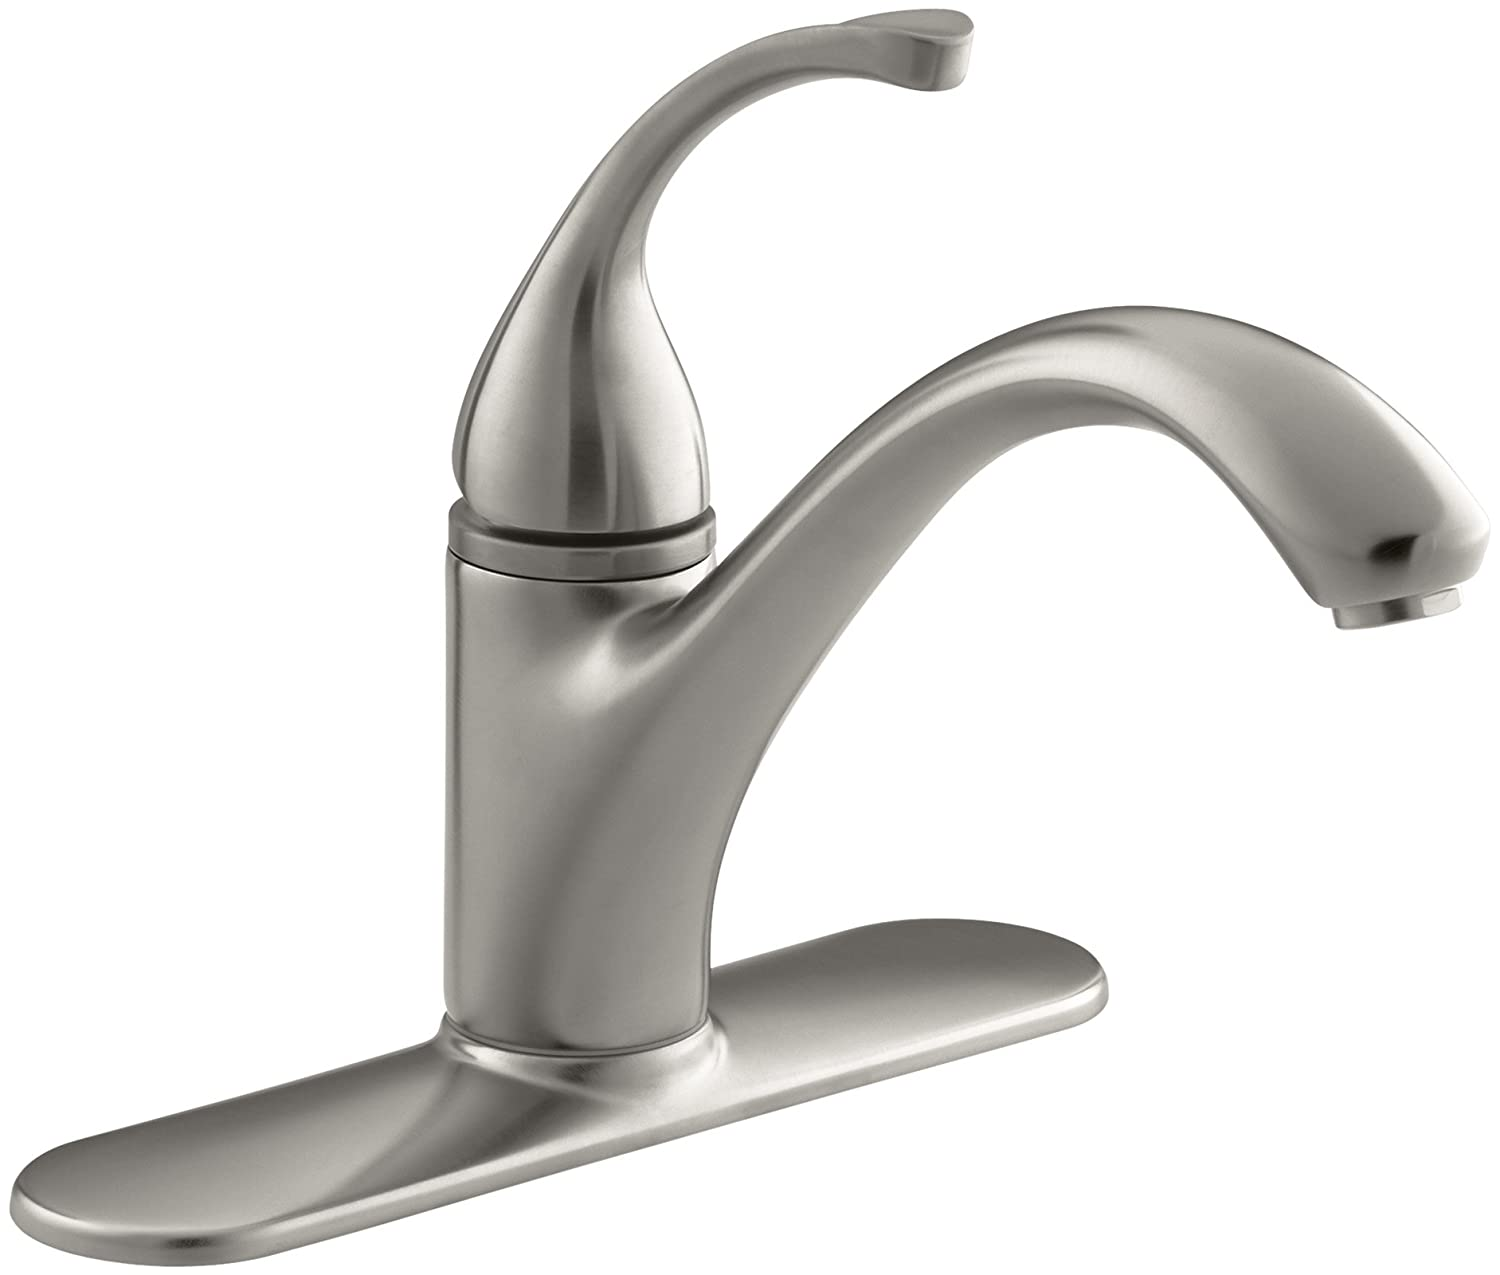 kohler k 10411 cp forte single control kitchen sink faucet with